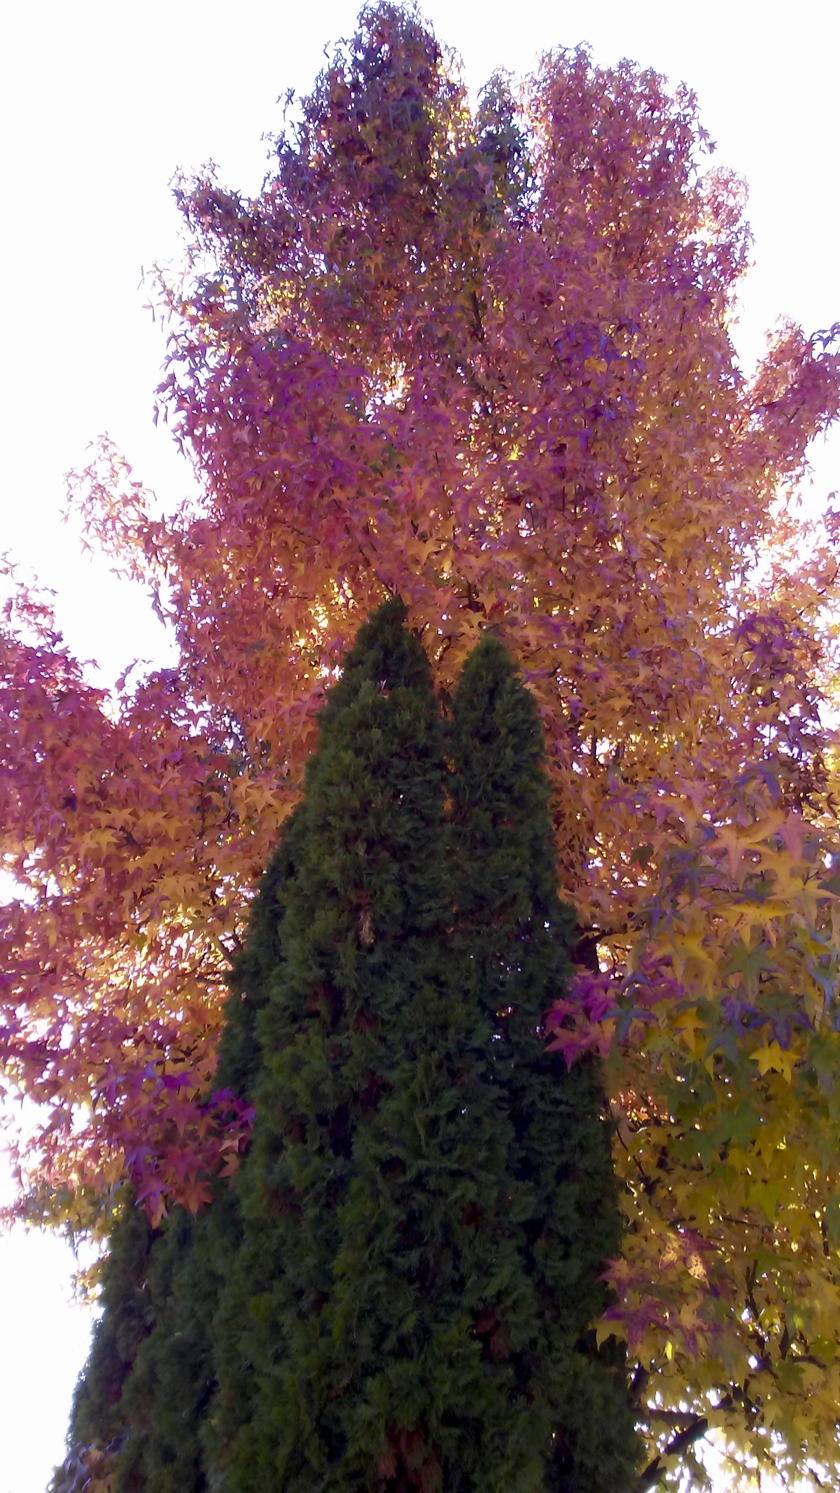 Two pines Hugged by pink leafy tree